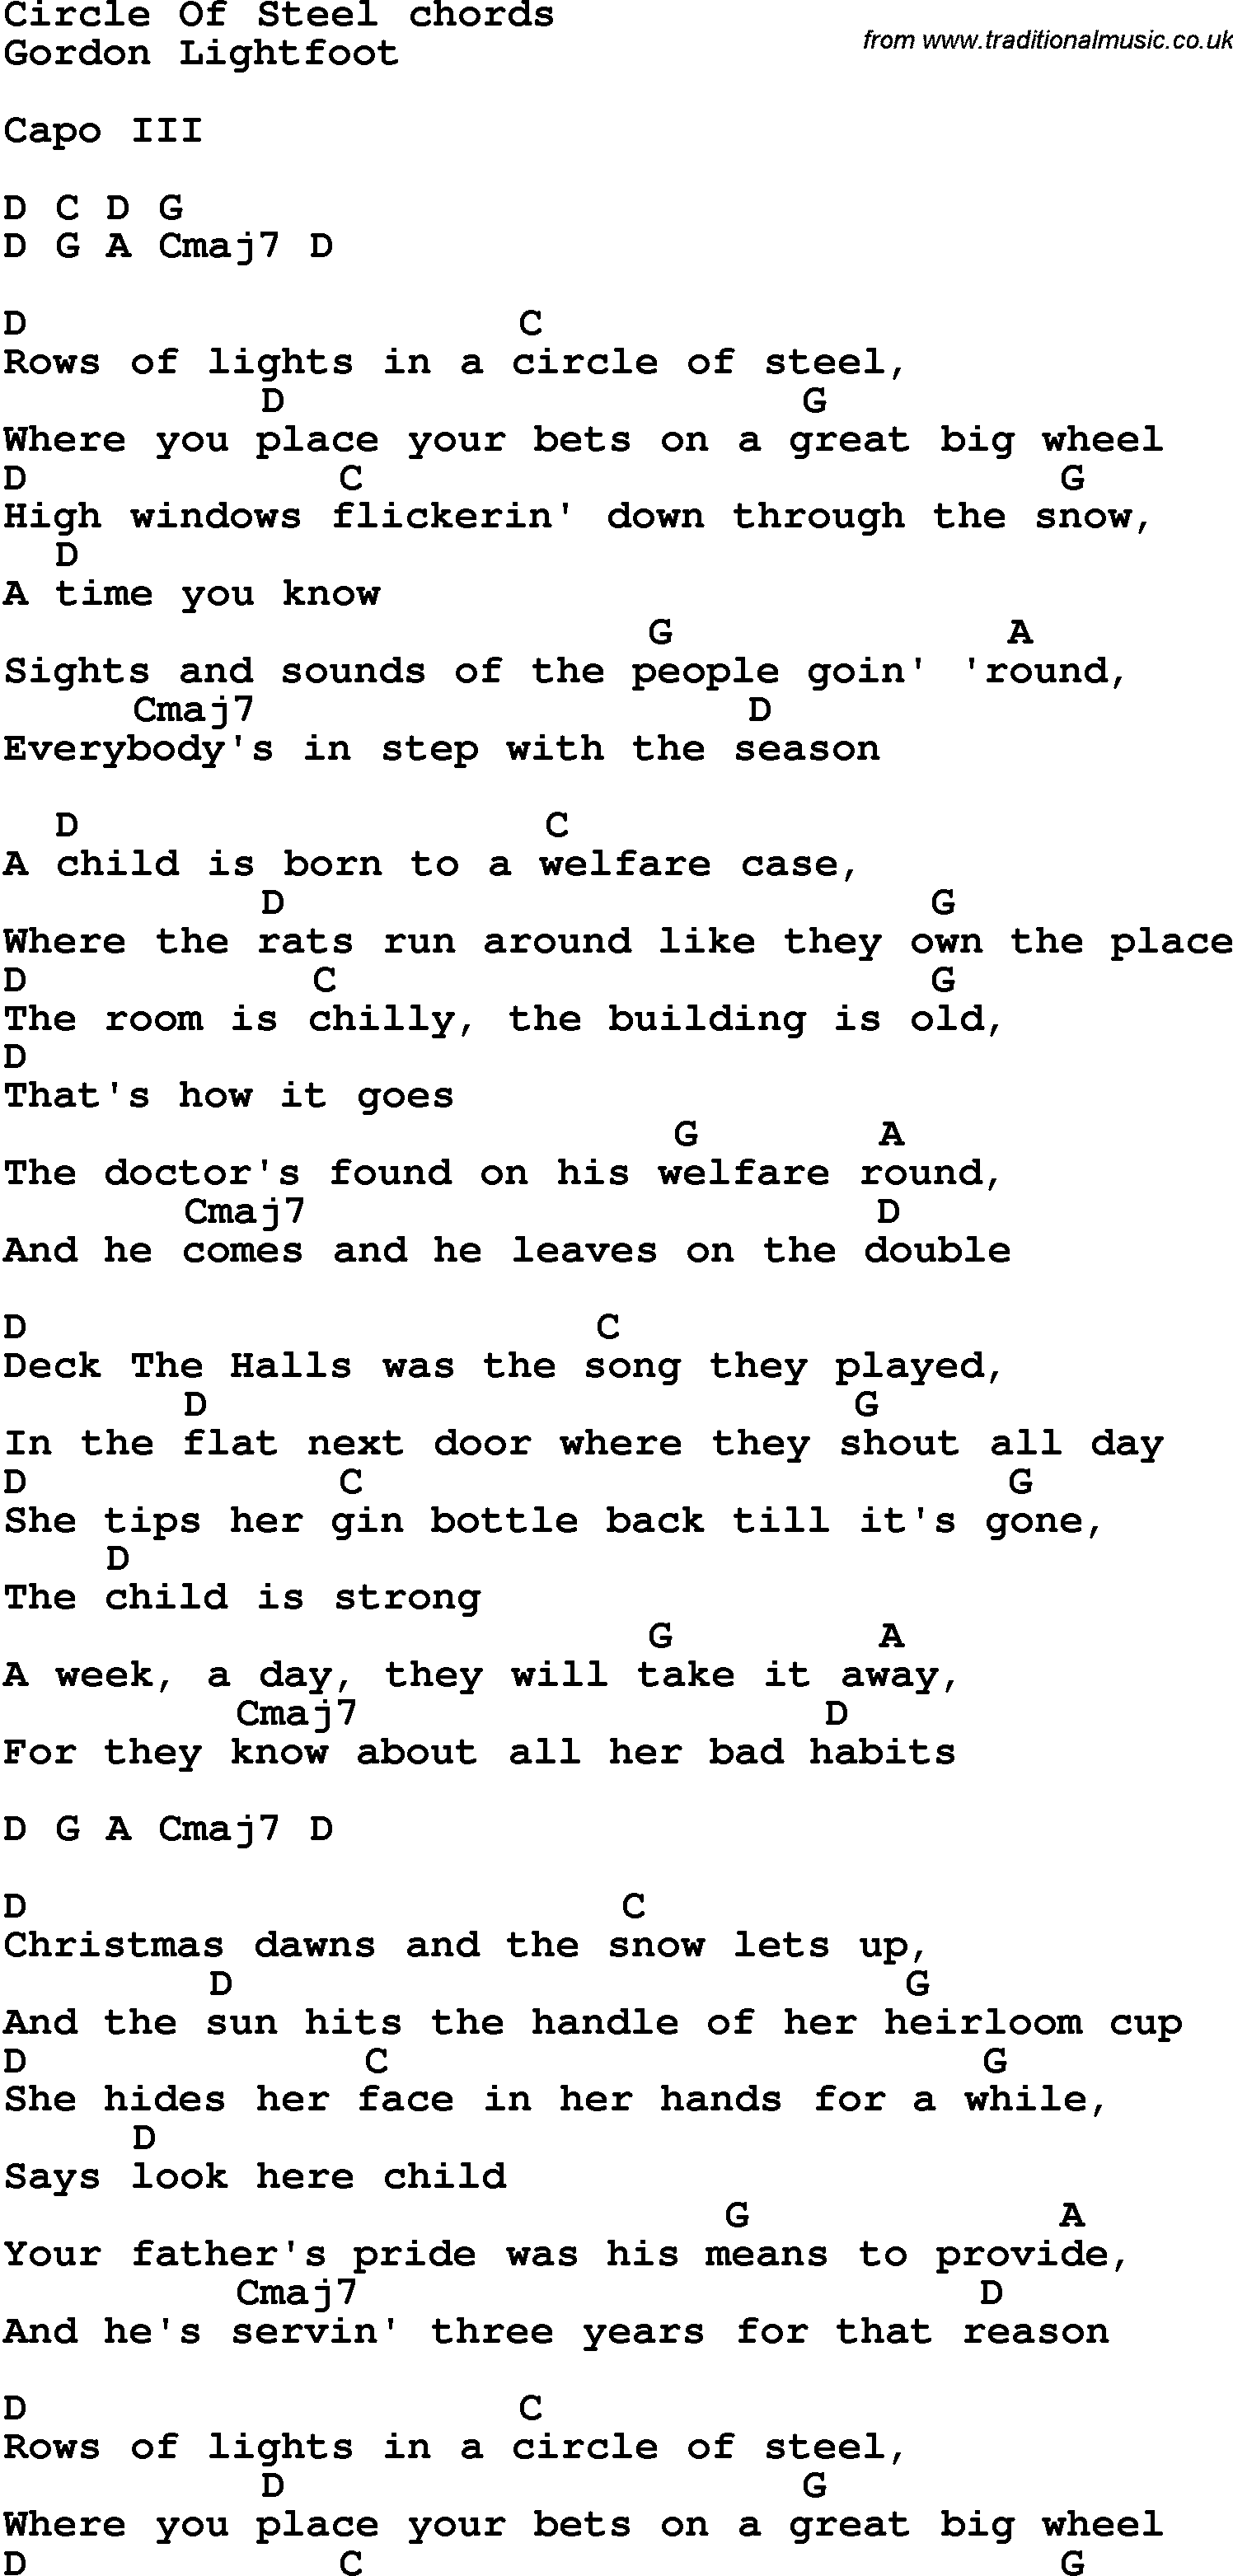 Song Lyrics With Guitar Chords For Circle Of Steel